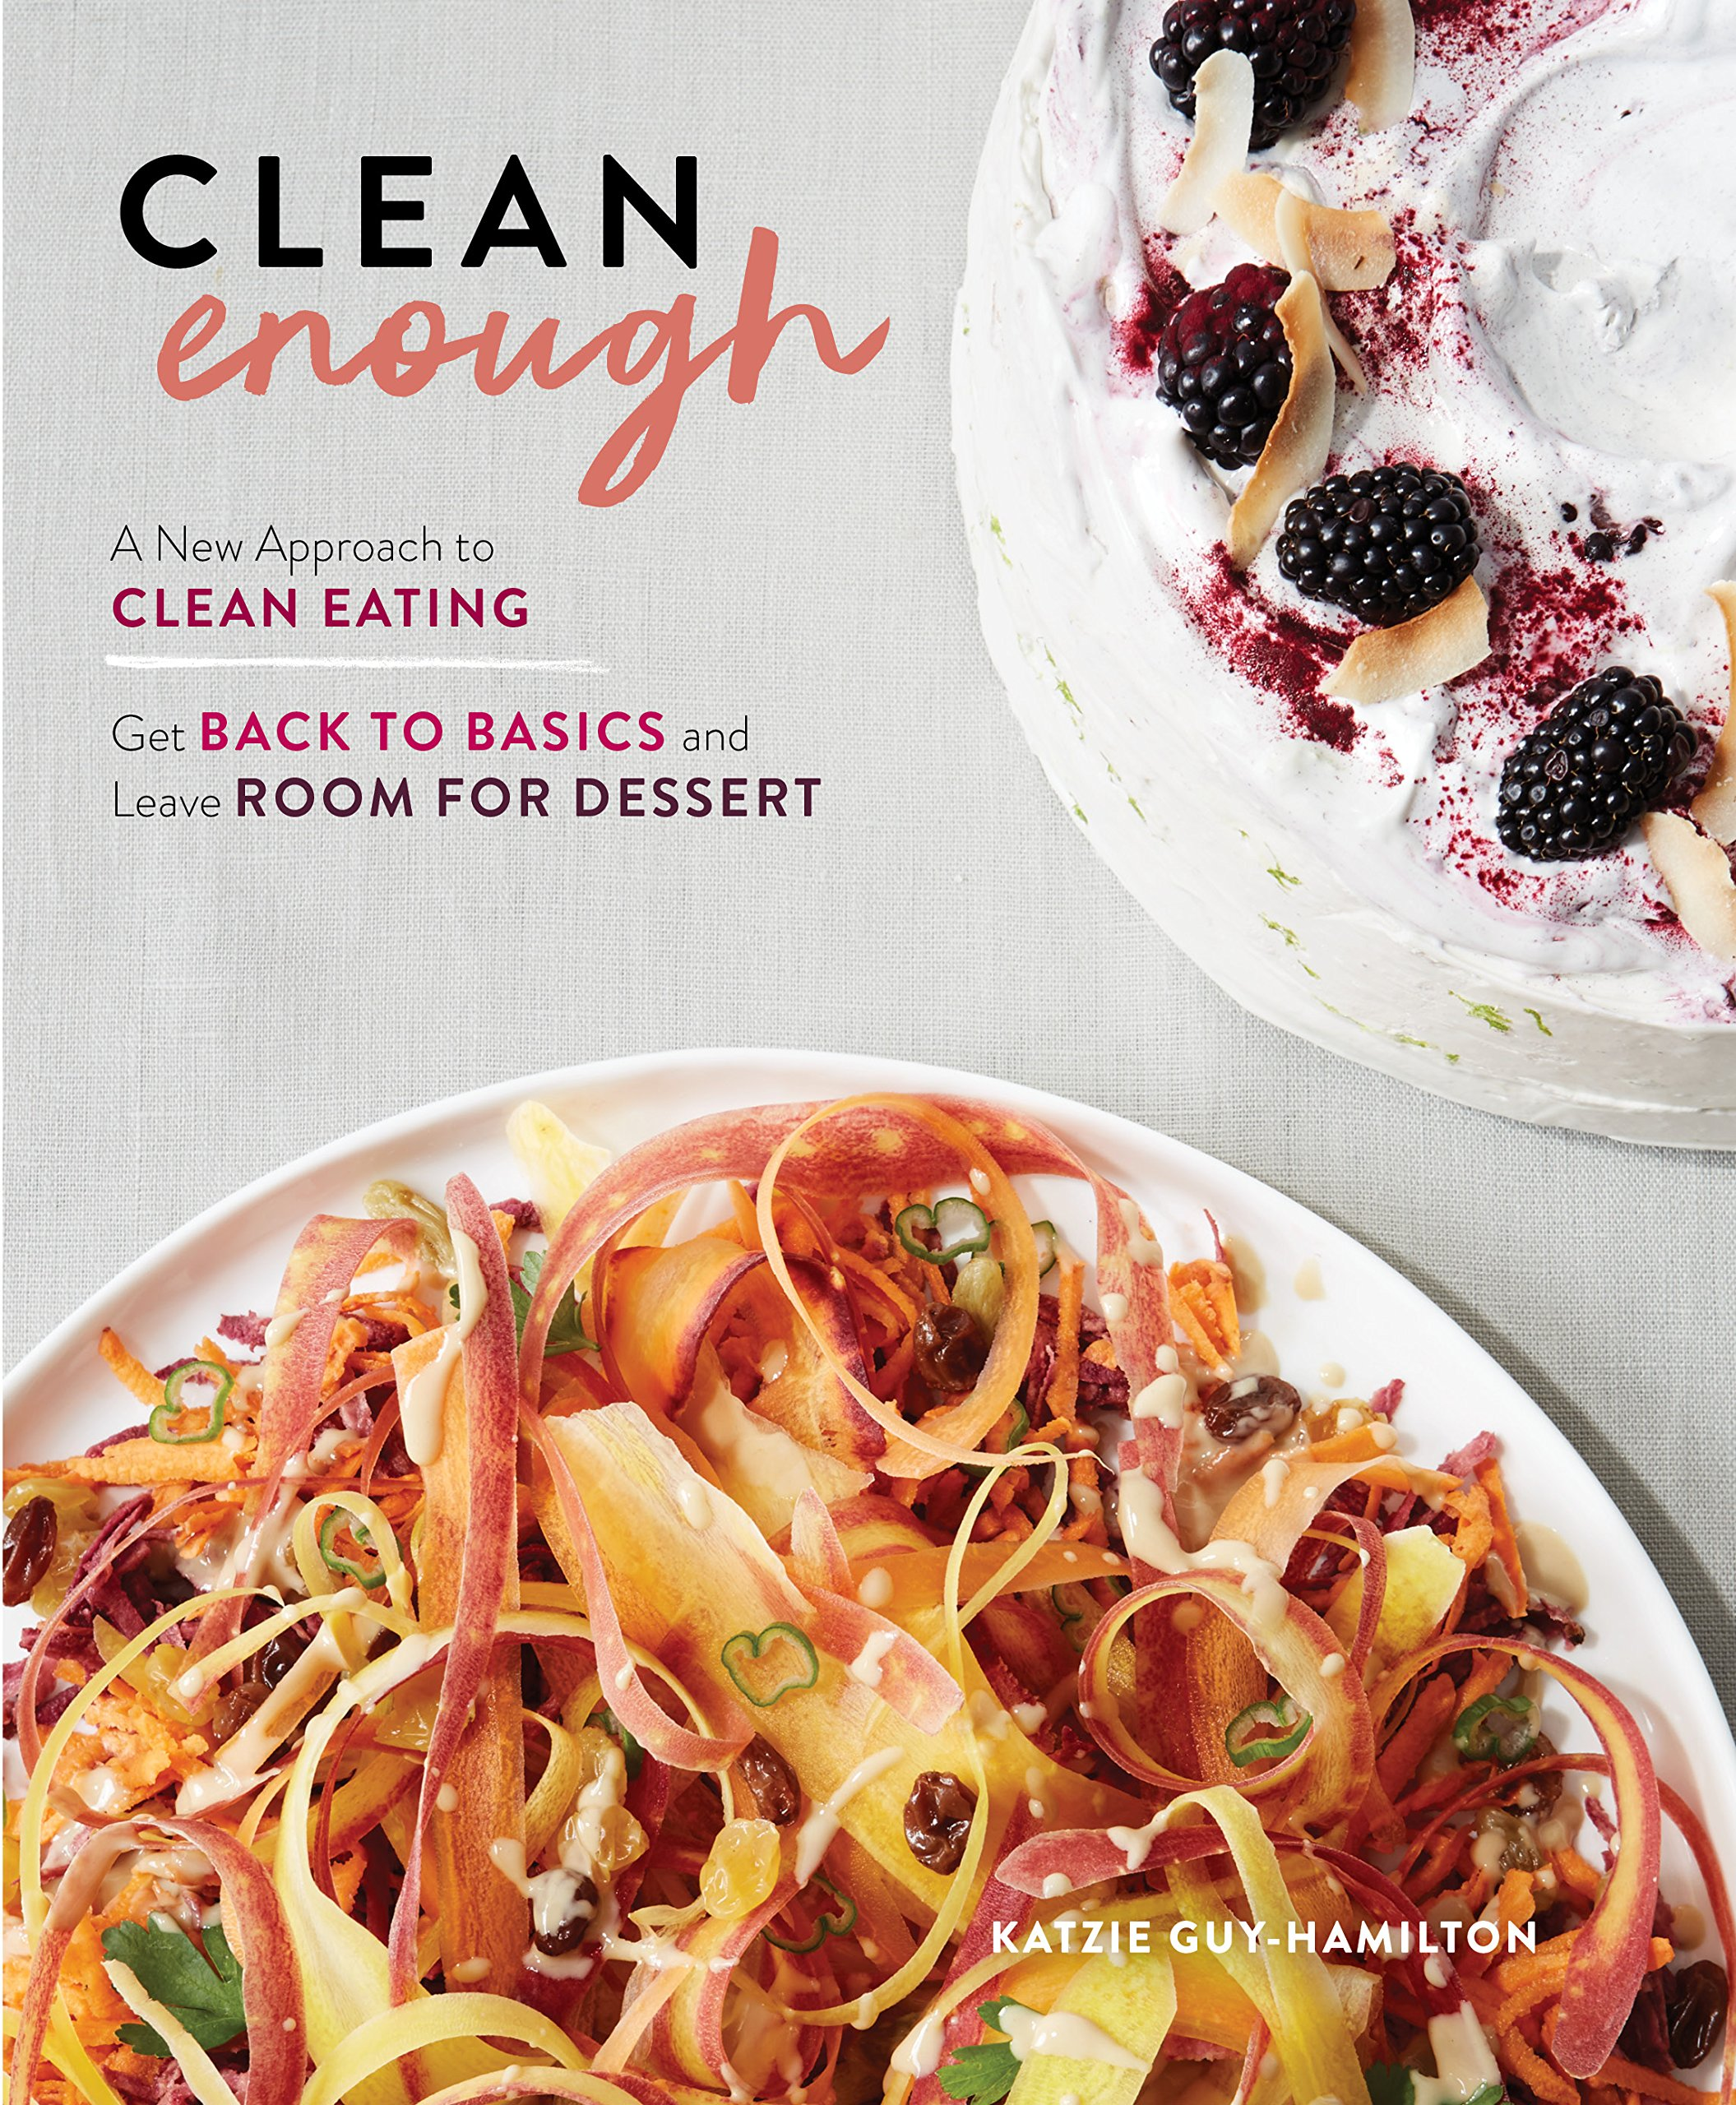 Clean Enough: A New Approach to Clean Eating―Get Back to Basics and Leave Room for Dessert